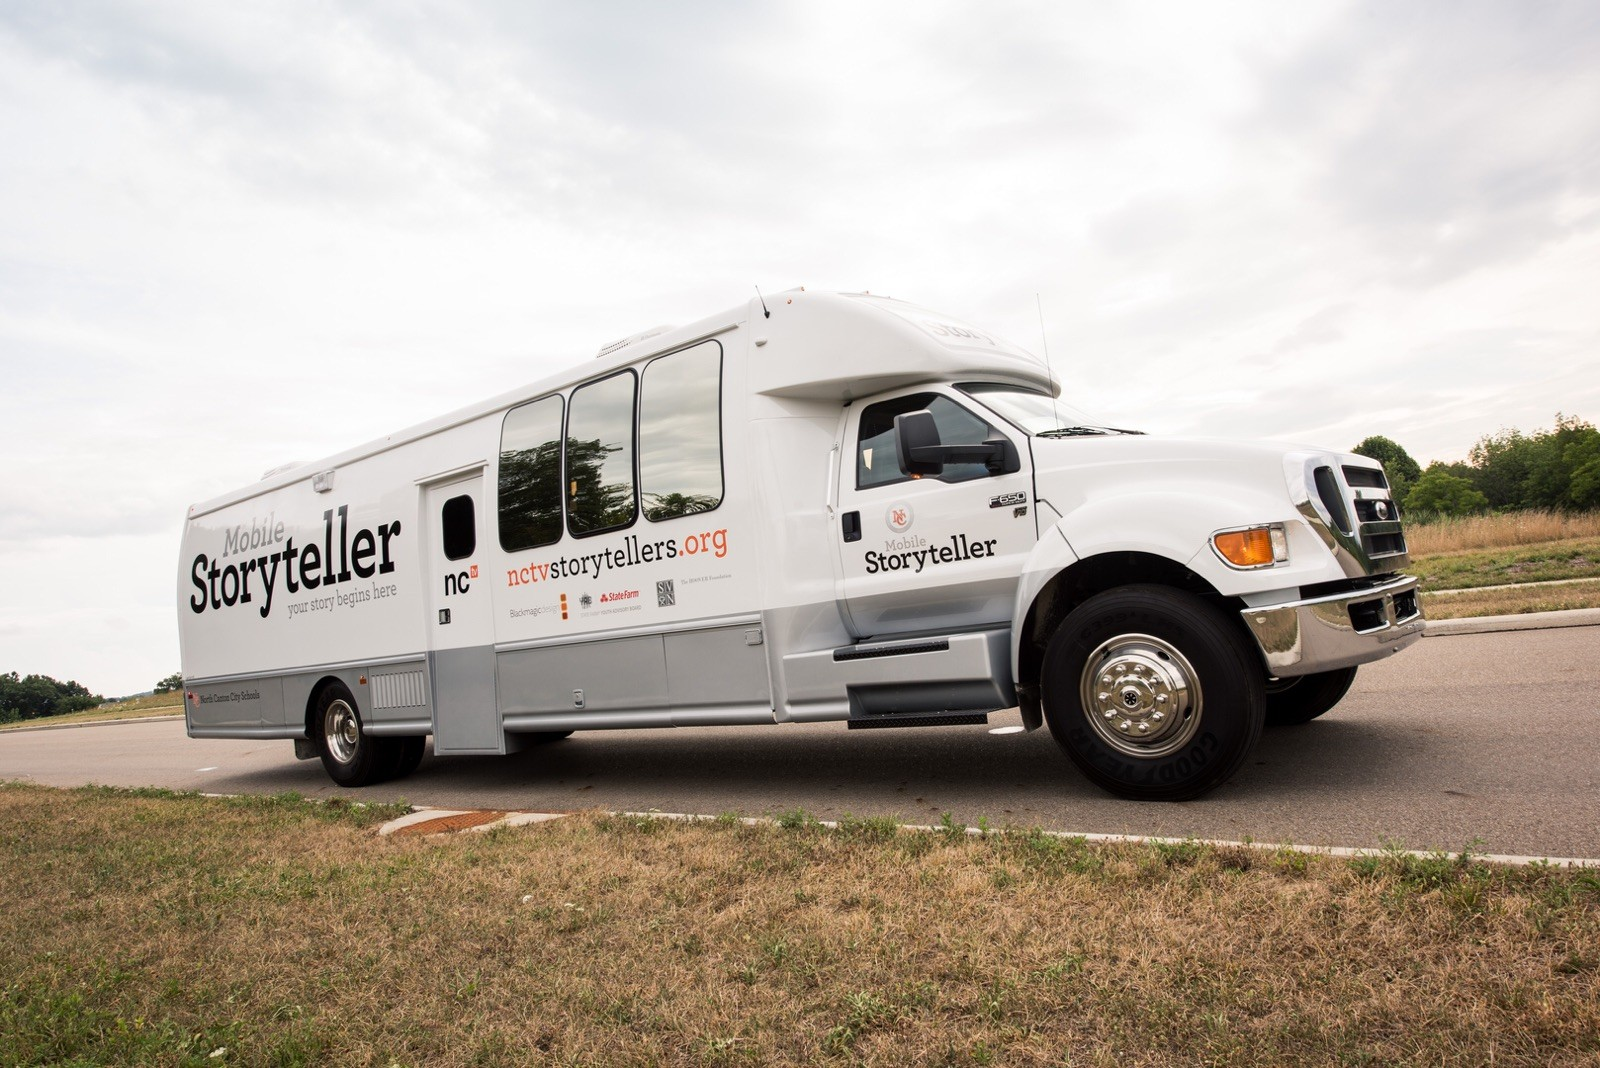 The Mobile Storyteller Unit